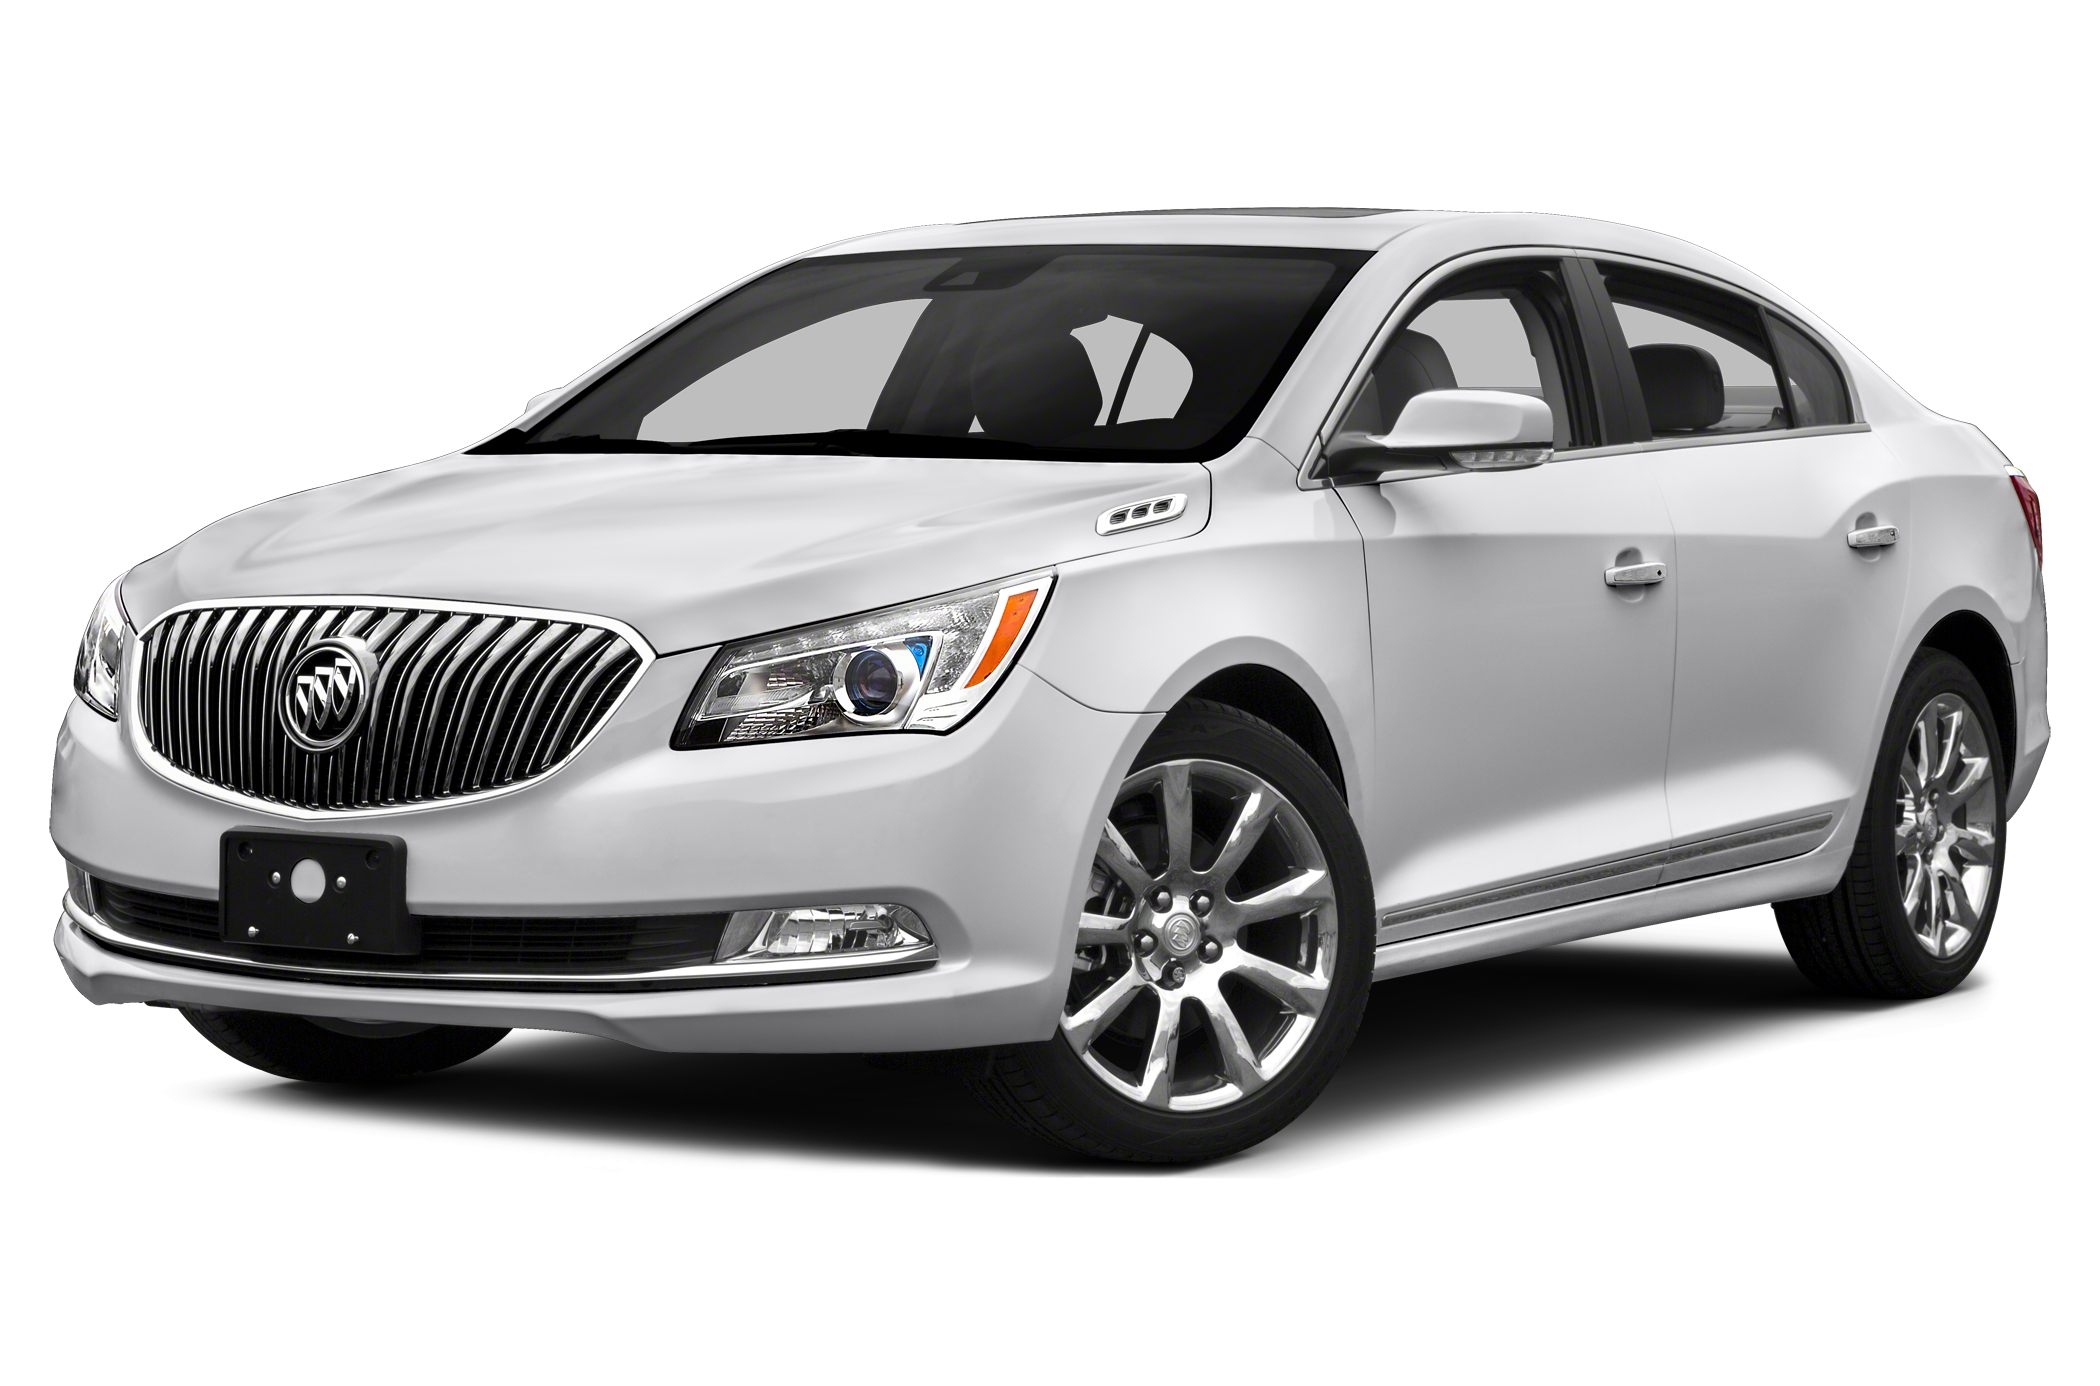 2014 Buick LaCrosse Premium 2 Sedan for sale in Memphis for $45,345 with 0 miles.